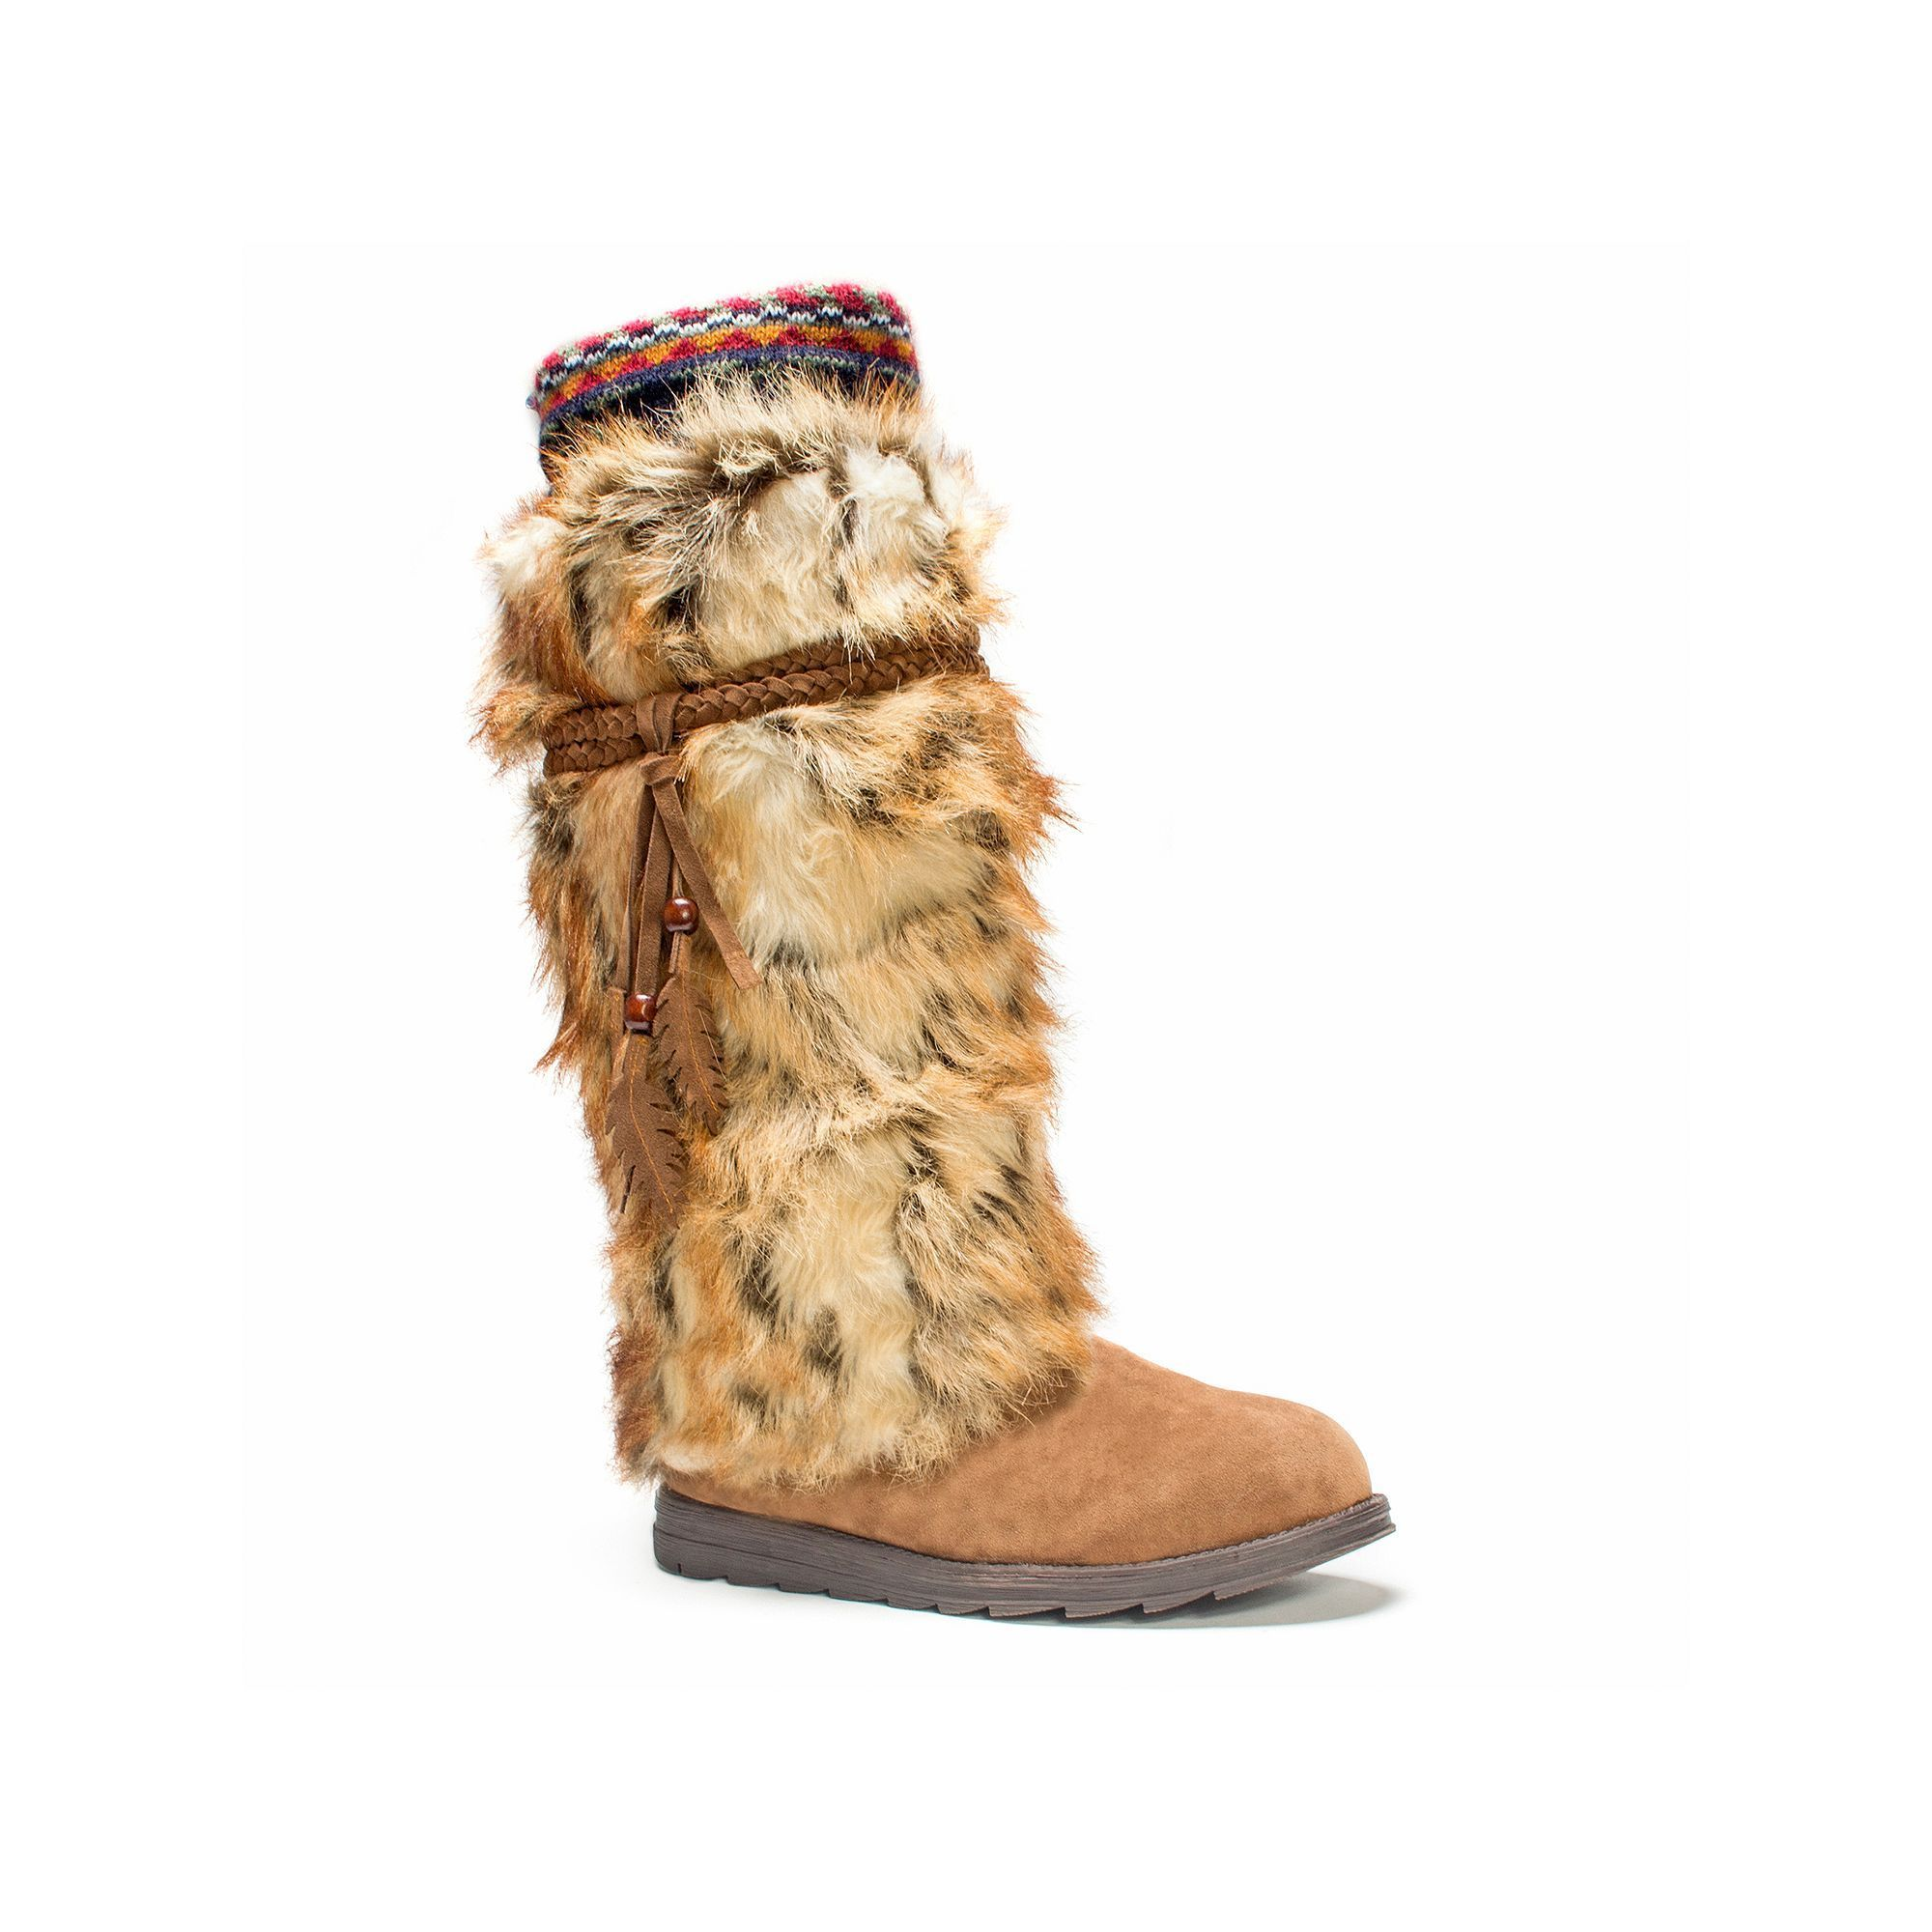 Featuring a faux-fur shaft and feather accents, these women's MUK LUKS  winter boots stand out from the crowd. In dark brown.